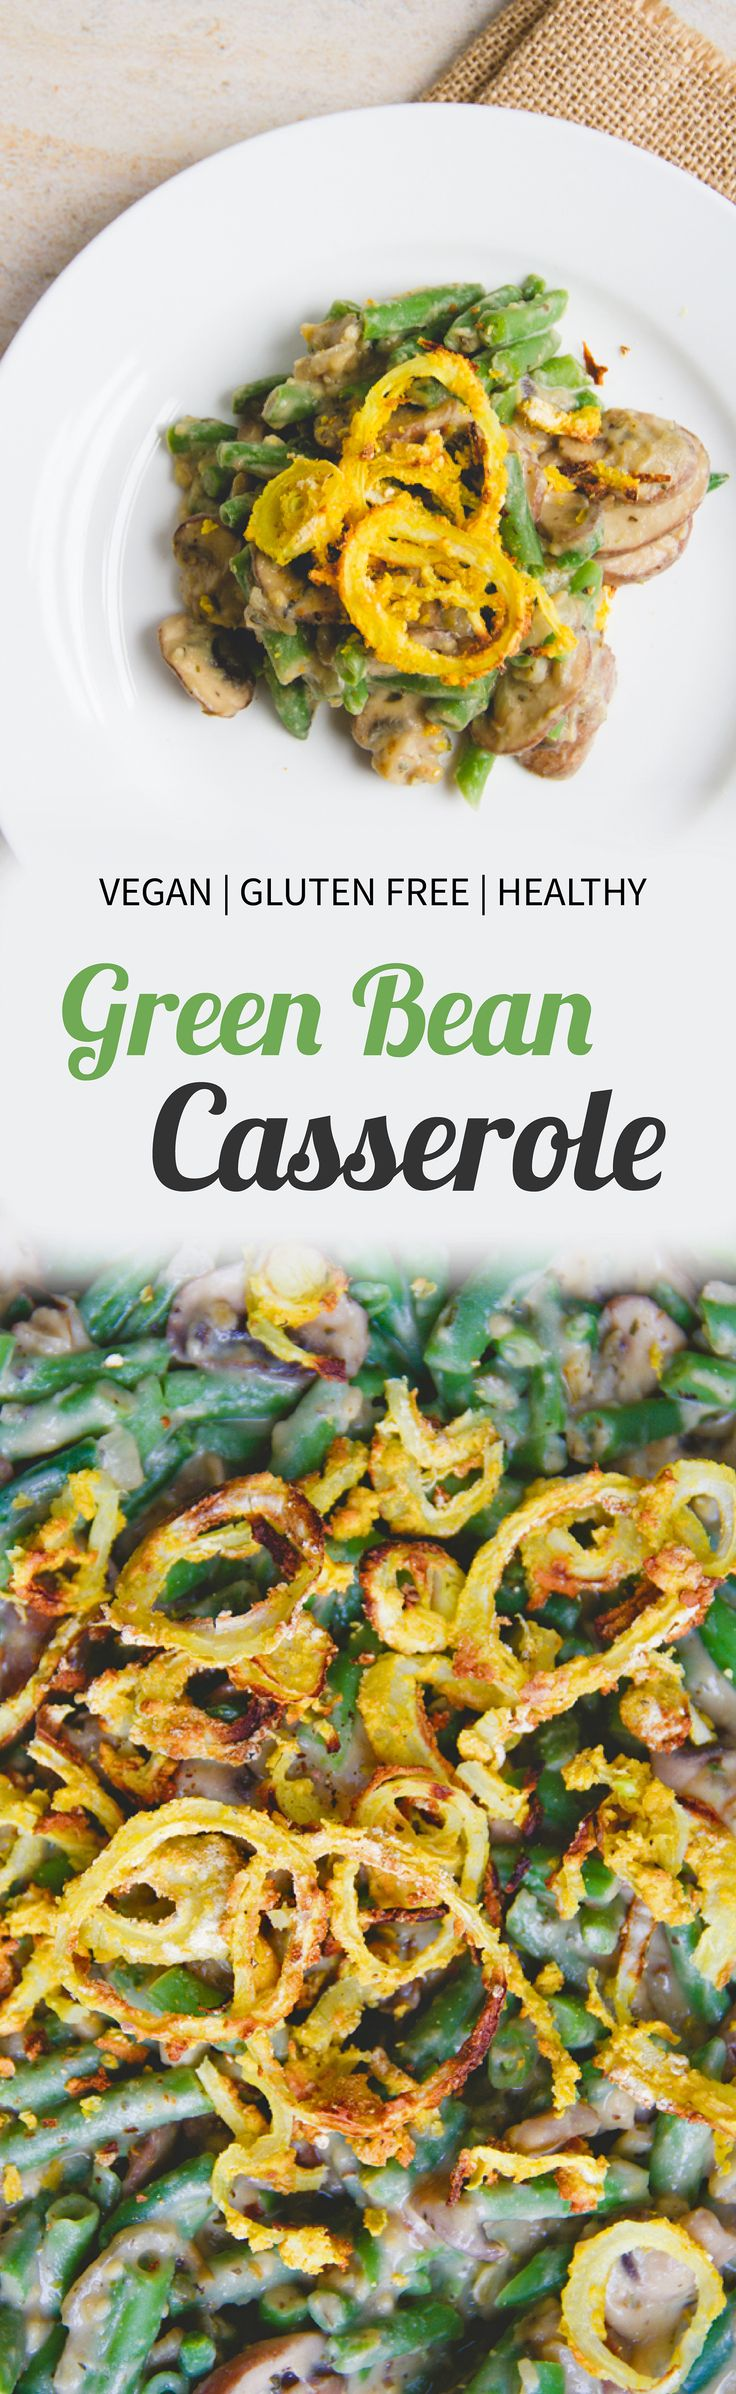 Vegan green bean casserole with crispy oven-baked onions